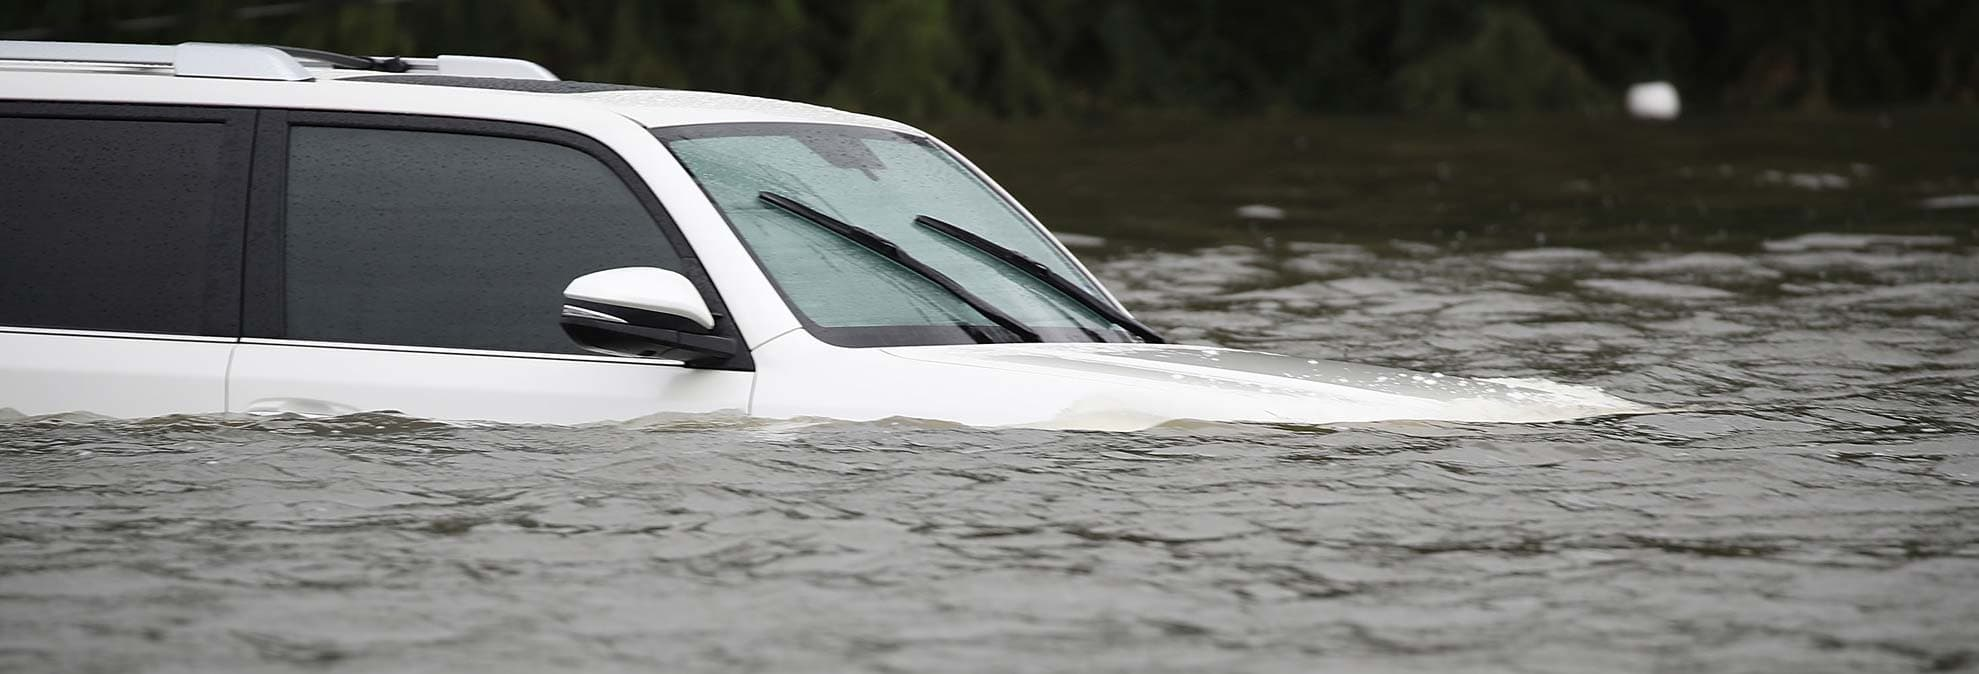 Why Flooded-Out Cars Are Likely Total Losses - Consumer Reports